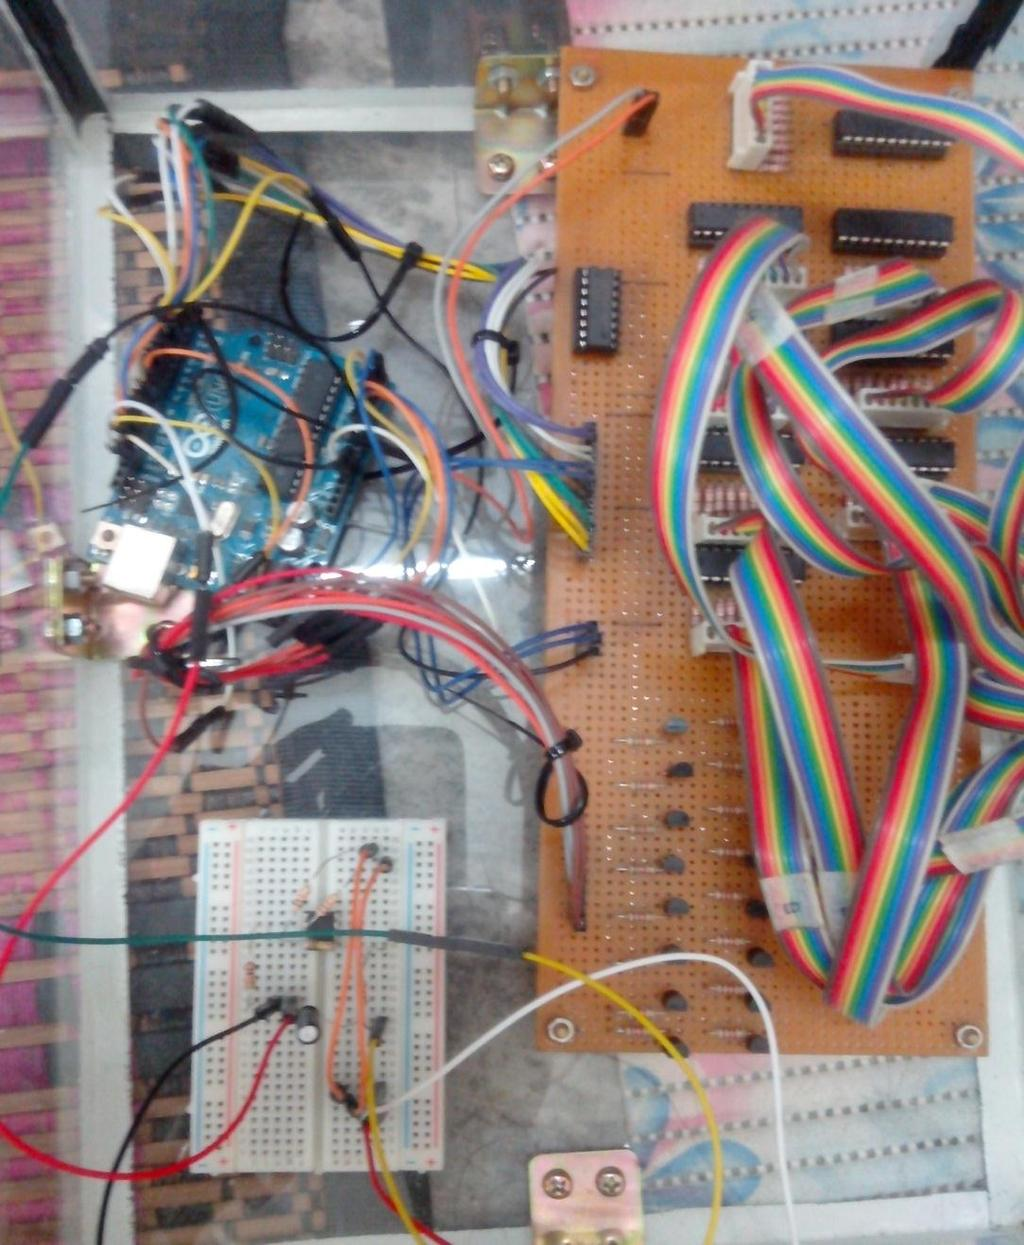 Controlling The Led Cube Patterns With Audio Input Signal Muhammad Ac Fan Speed Control Using Android Mobile Microtronics Technologies 40 Multiplexing Circuit Arduino Uno